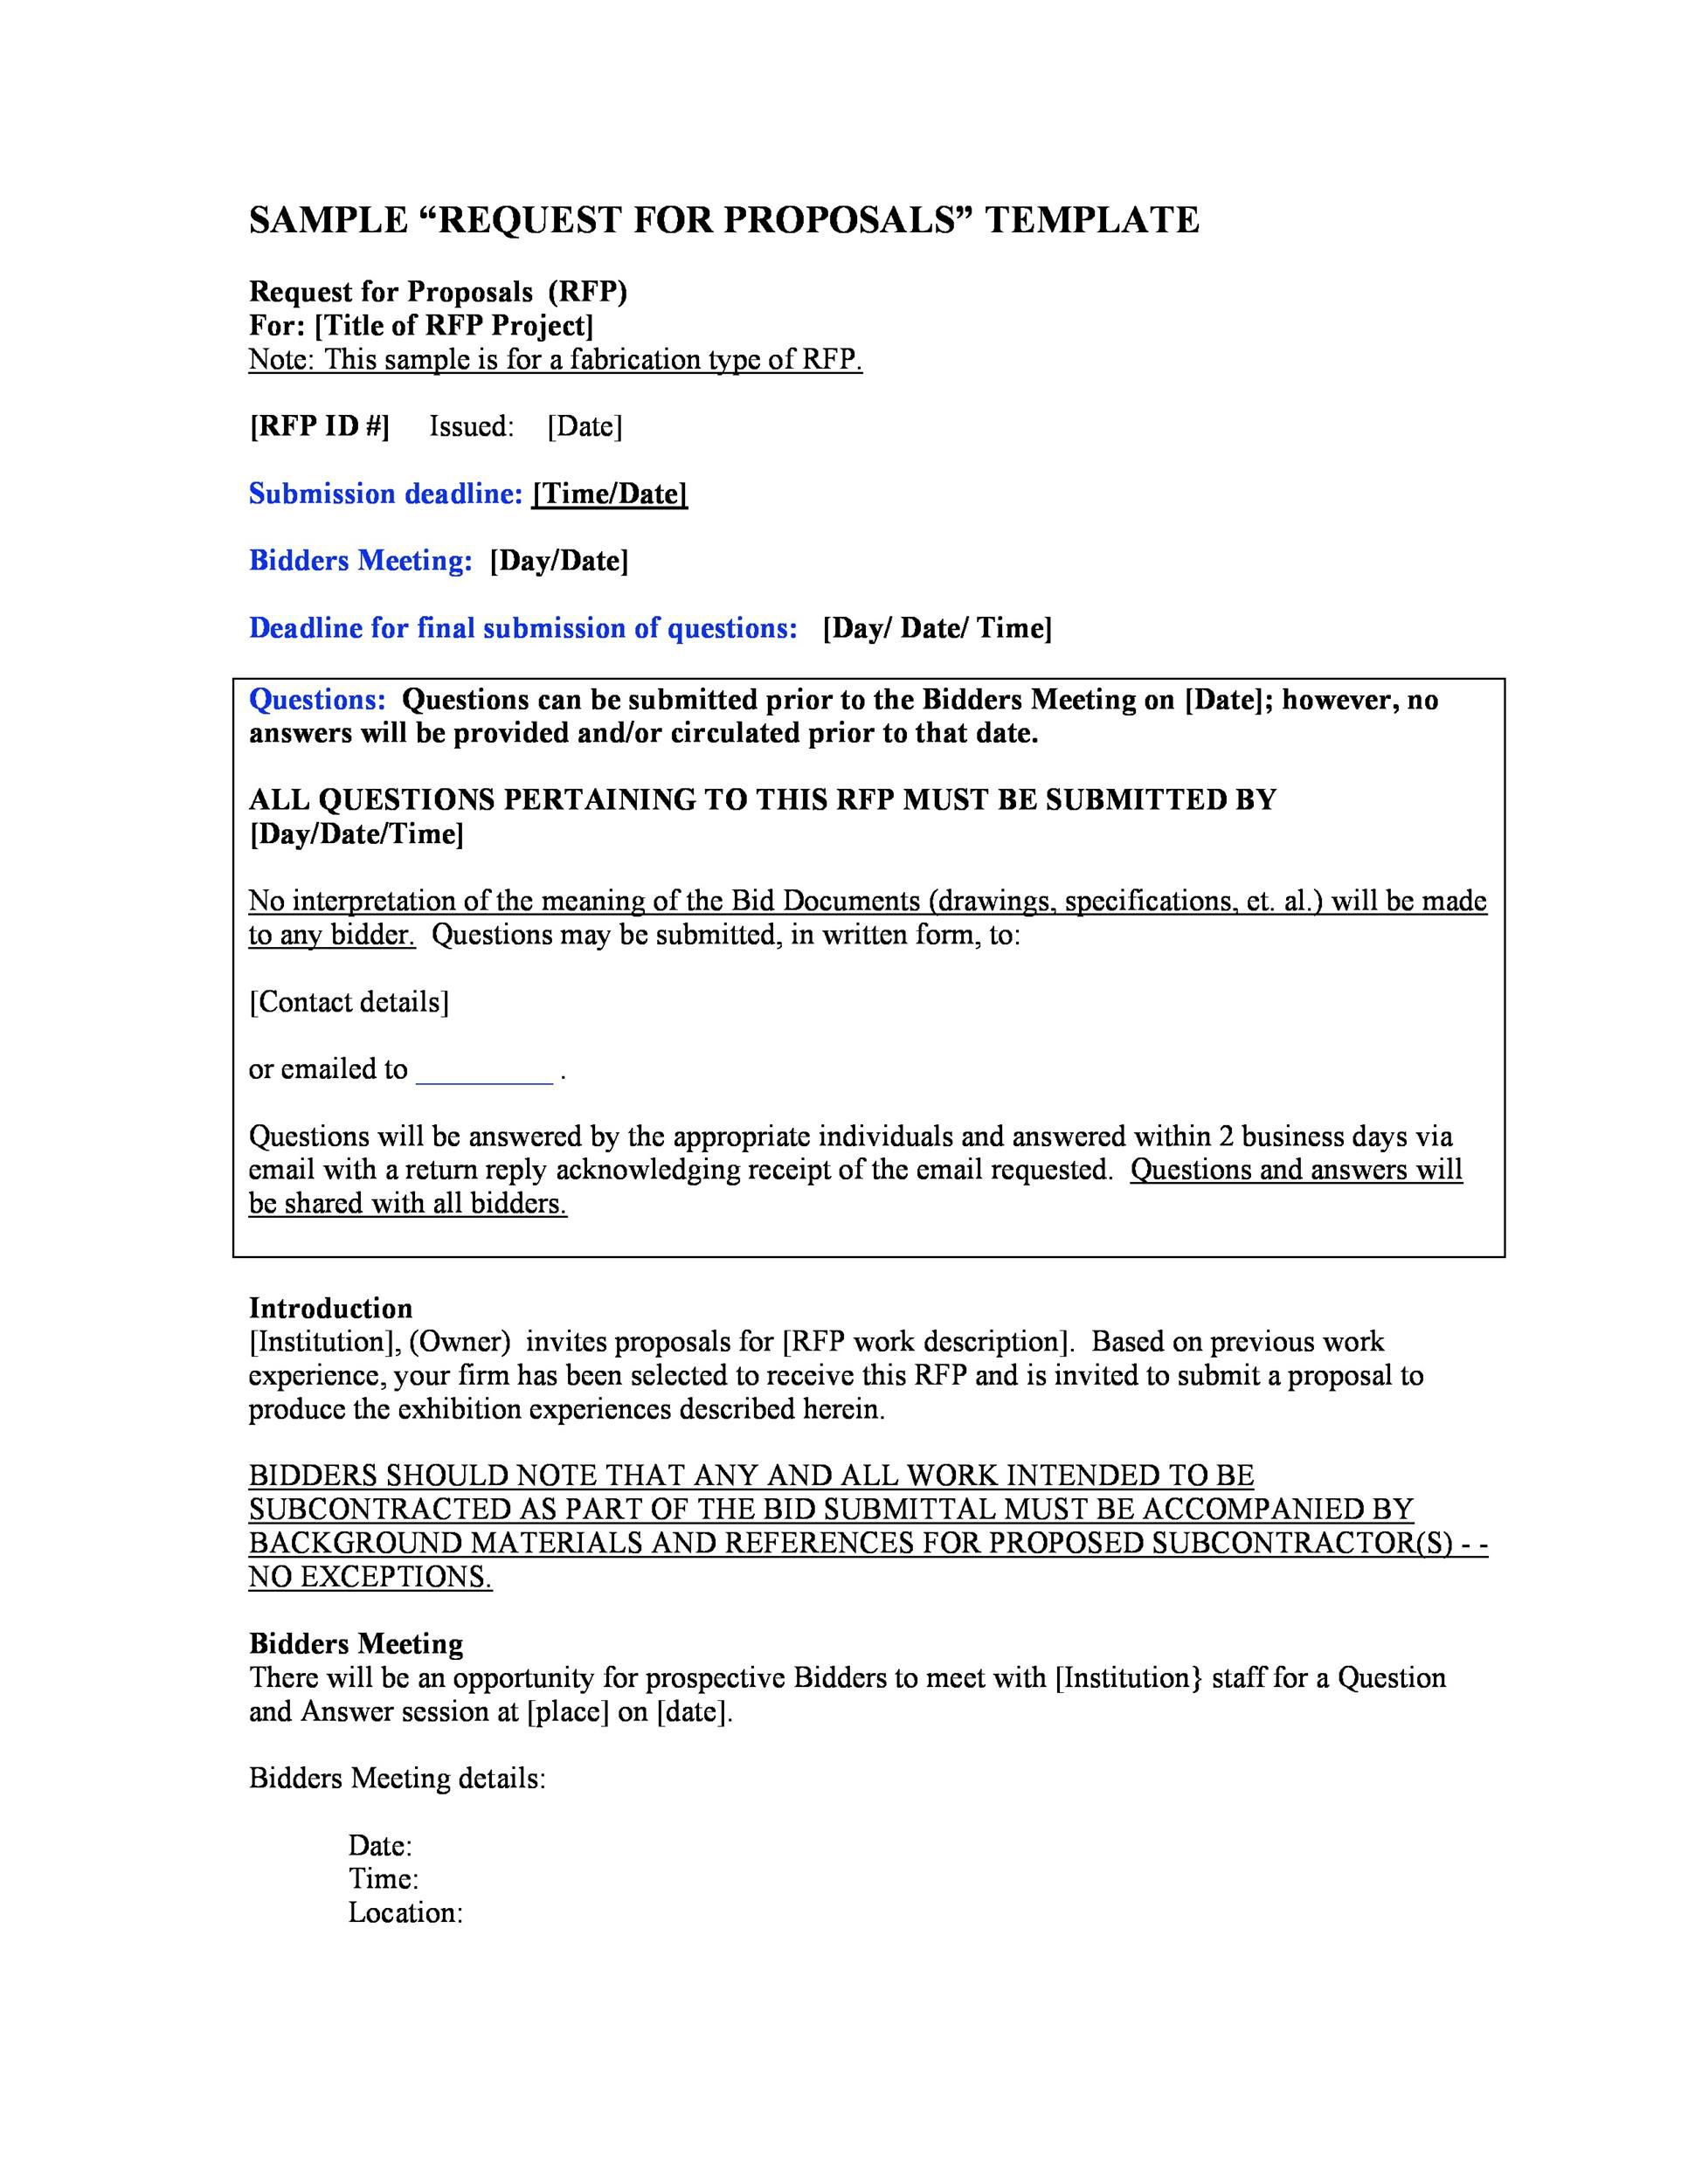 007 Awesome Request For Proposal Rfp Template Construction Picture Full